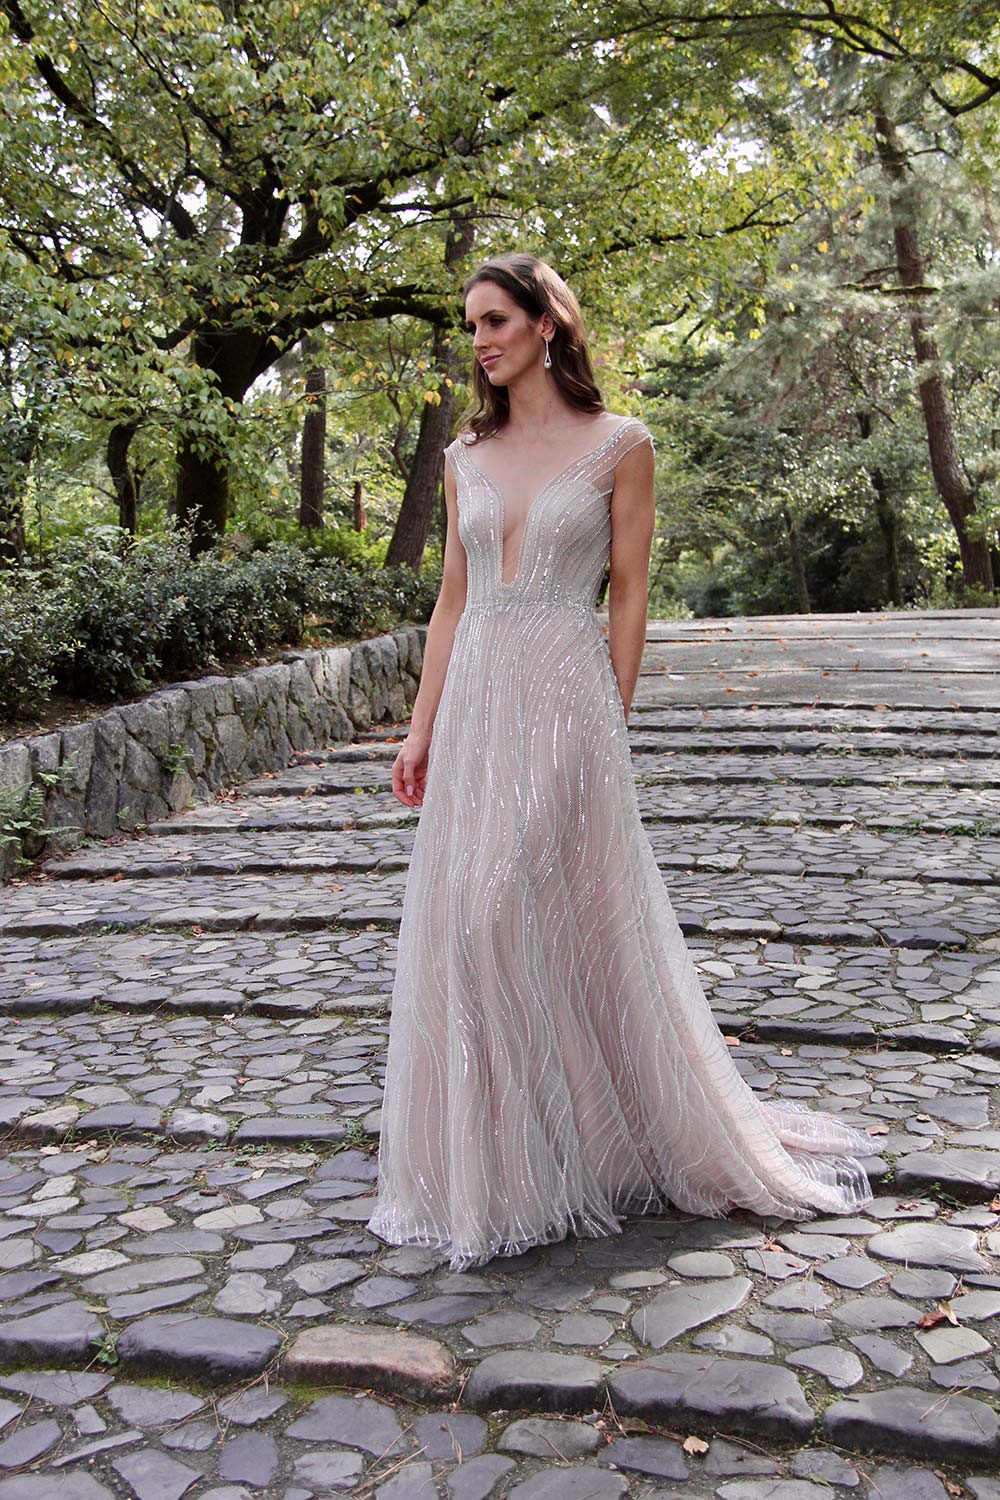 Female model wearing Vinka Design An Oriental Affair Wedding Dress. On a walkway in the japanese forest the front detail of a high illusion neckline with a richly beaded silver-lined bodice and low sheer lace back on a blush base.